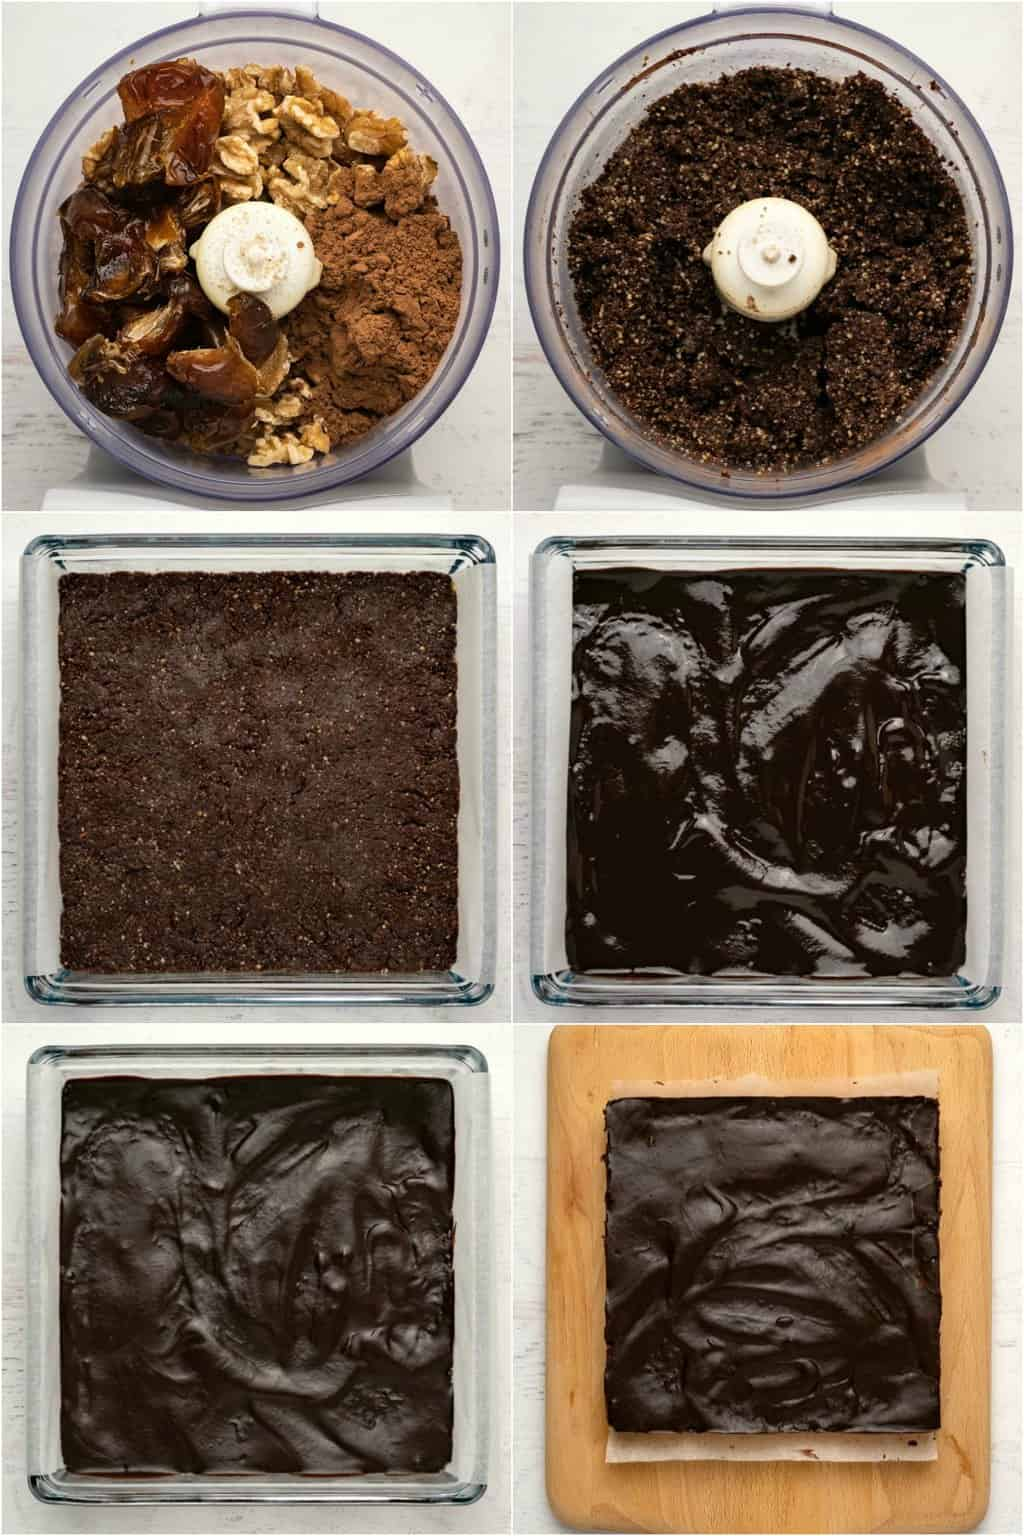 Step by step process photo collage of making raw vegan brownies.